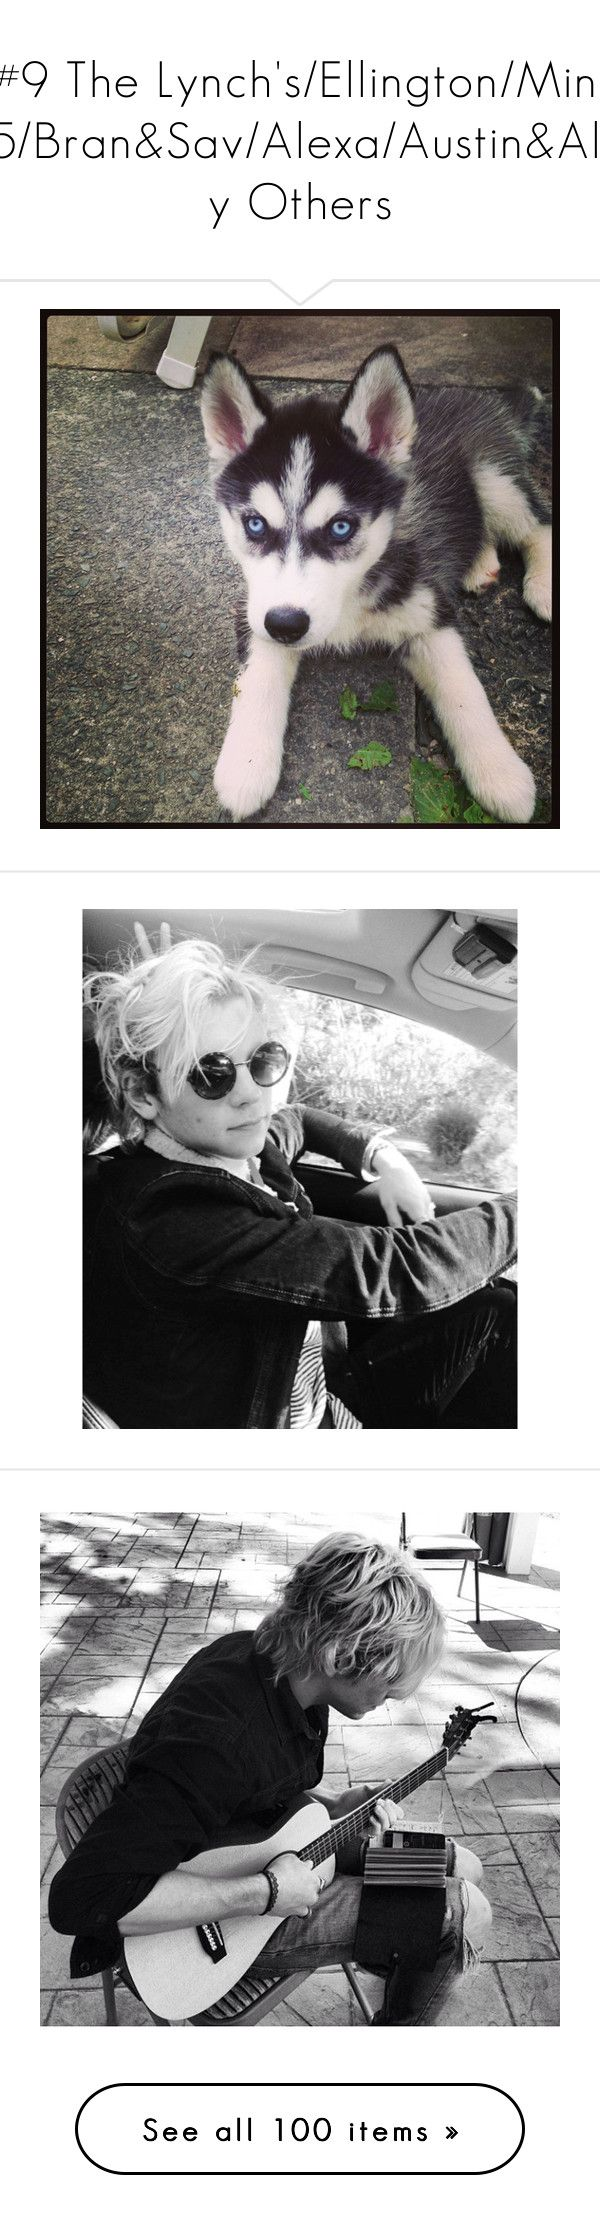 """""""#9 The Lynch's/Ellington/Mini R5/Bran&Sav/Alexa/Austin&Ally y Others"""" by vivianr5 ❤ liked on Polyvore featuring animals, r5, mermaids, backgrounds, pictures, people, photos, band pics, ross lynch and models"""